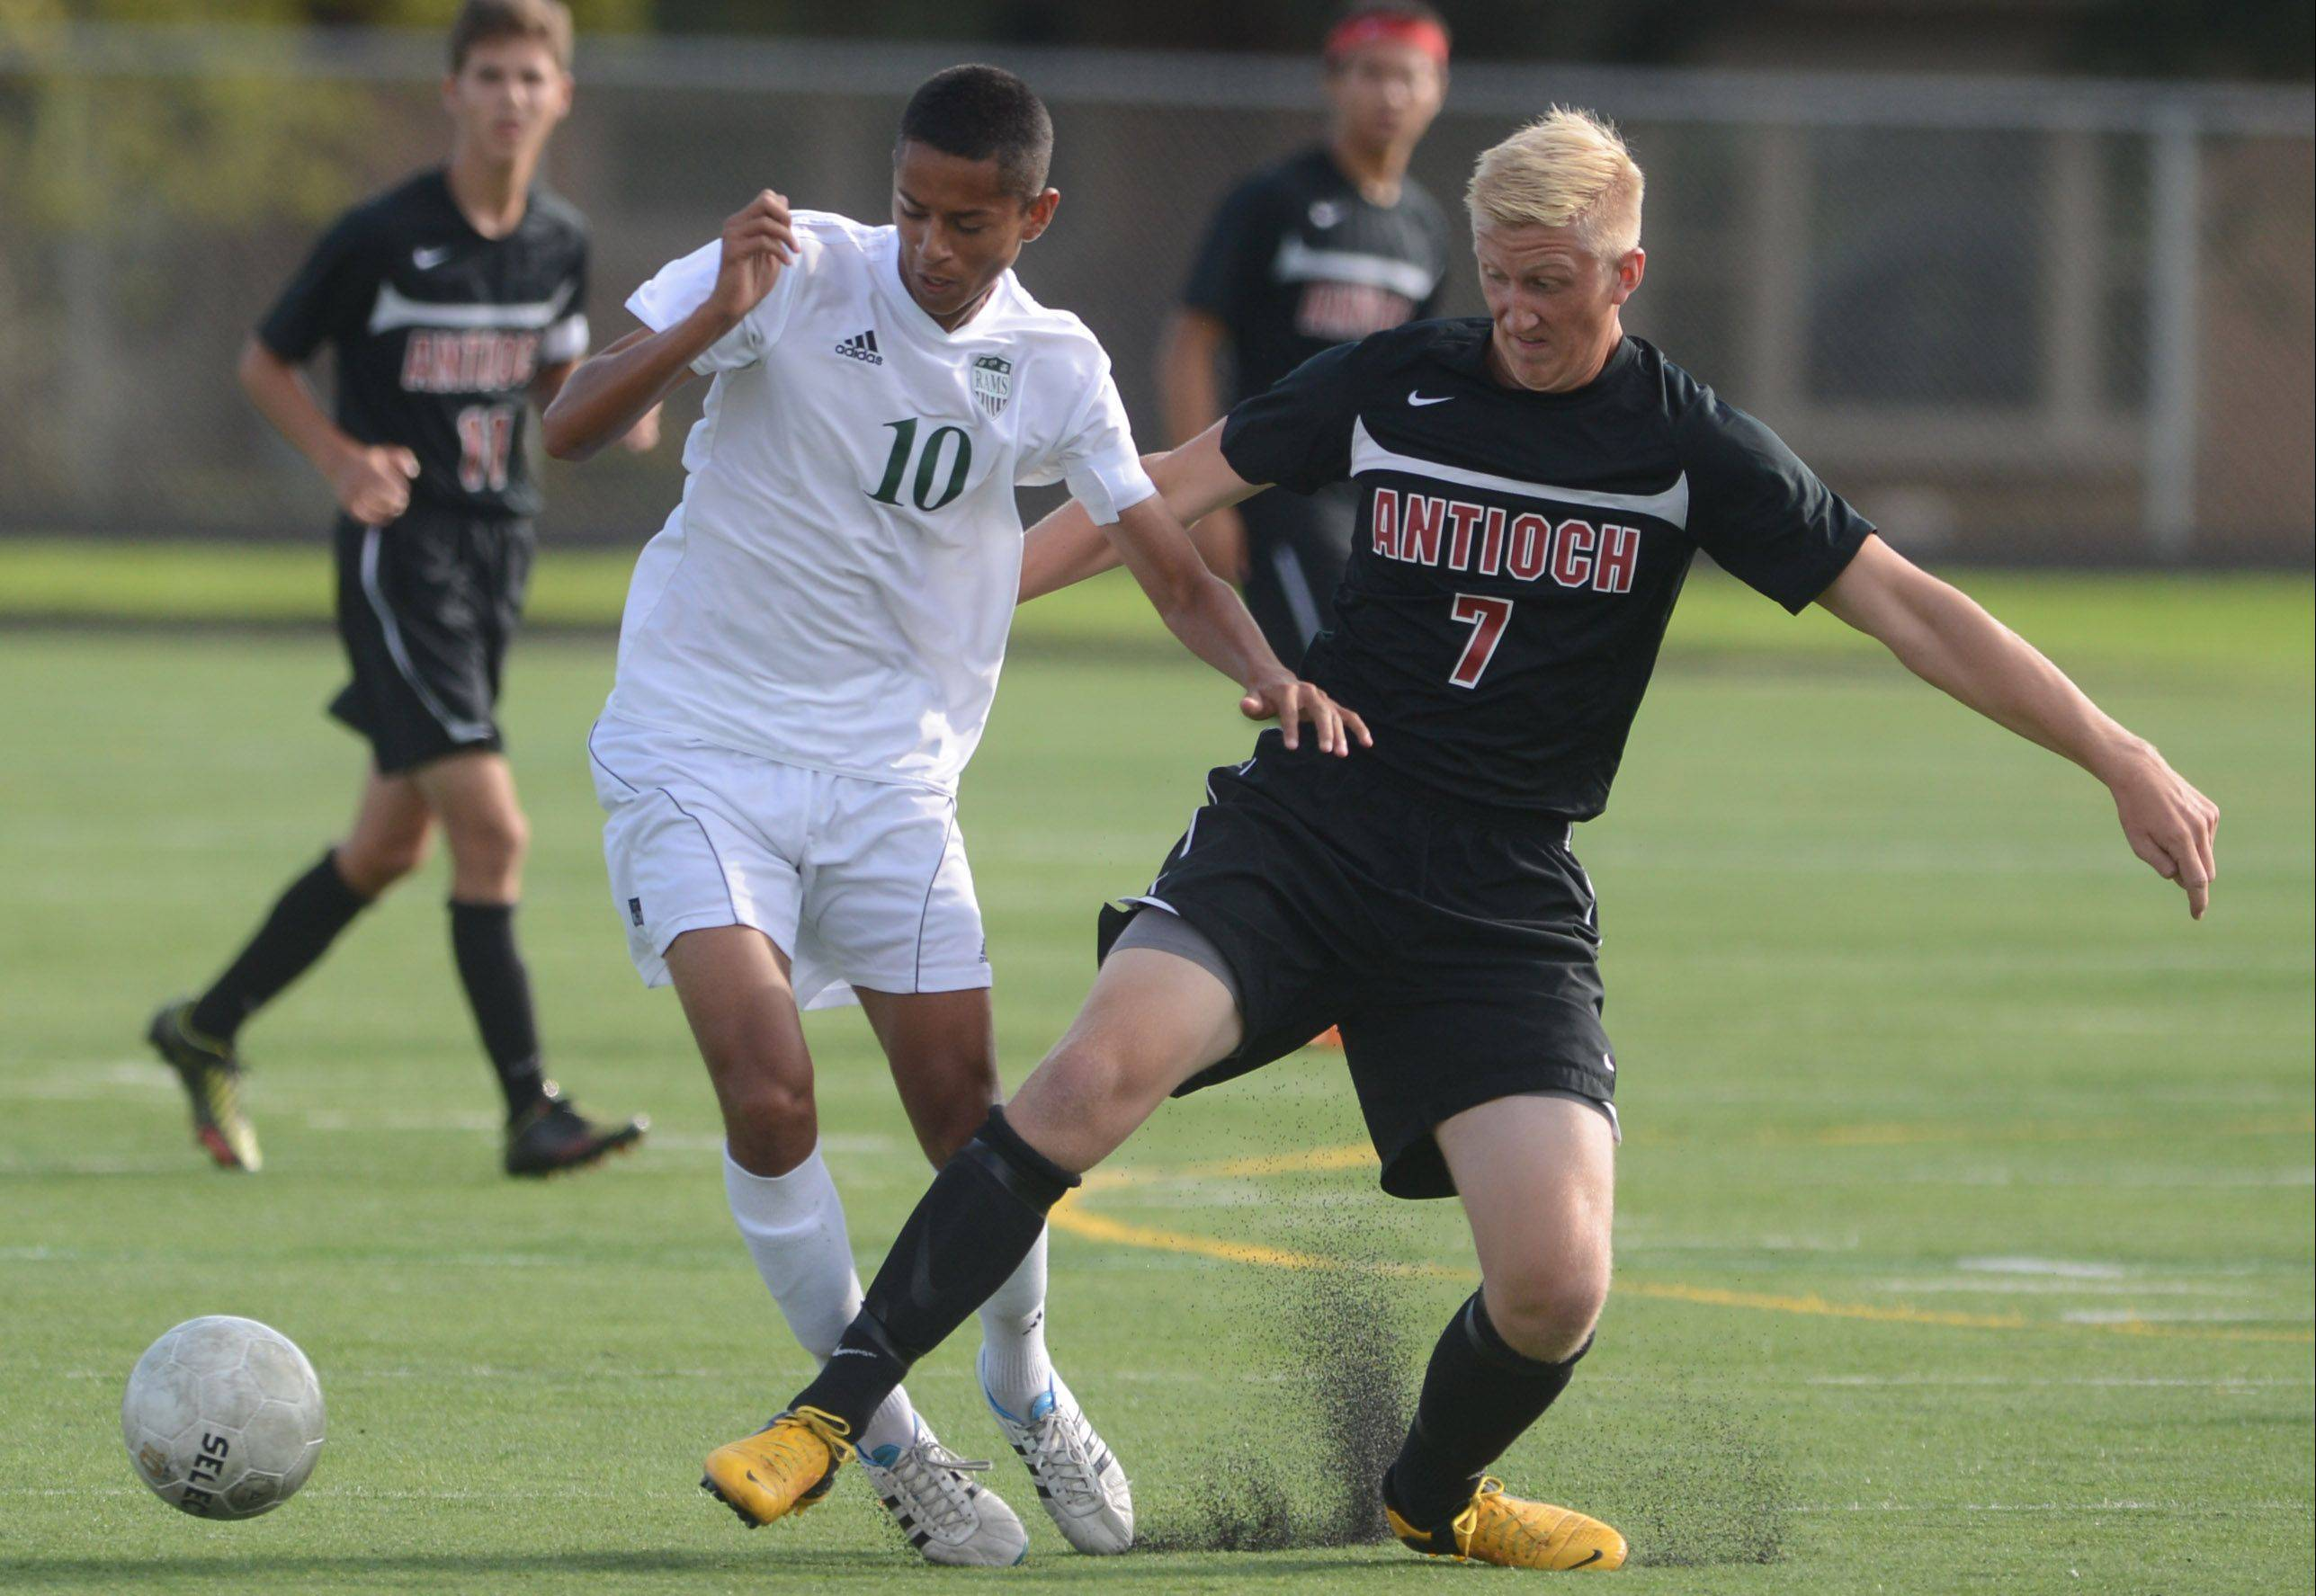 Grayslake Central's Johnny Madrid (10) fights for control with Antioch's JR Lonergan during Wednesday's soccer match in Grayslake.